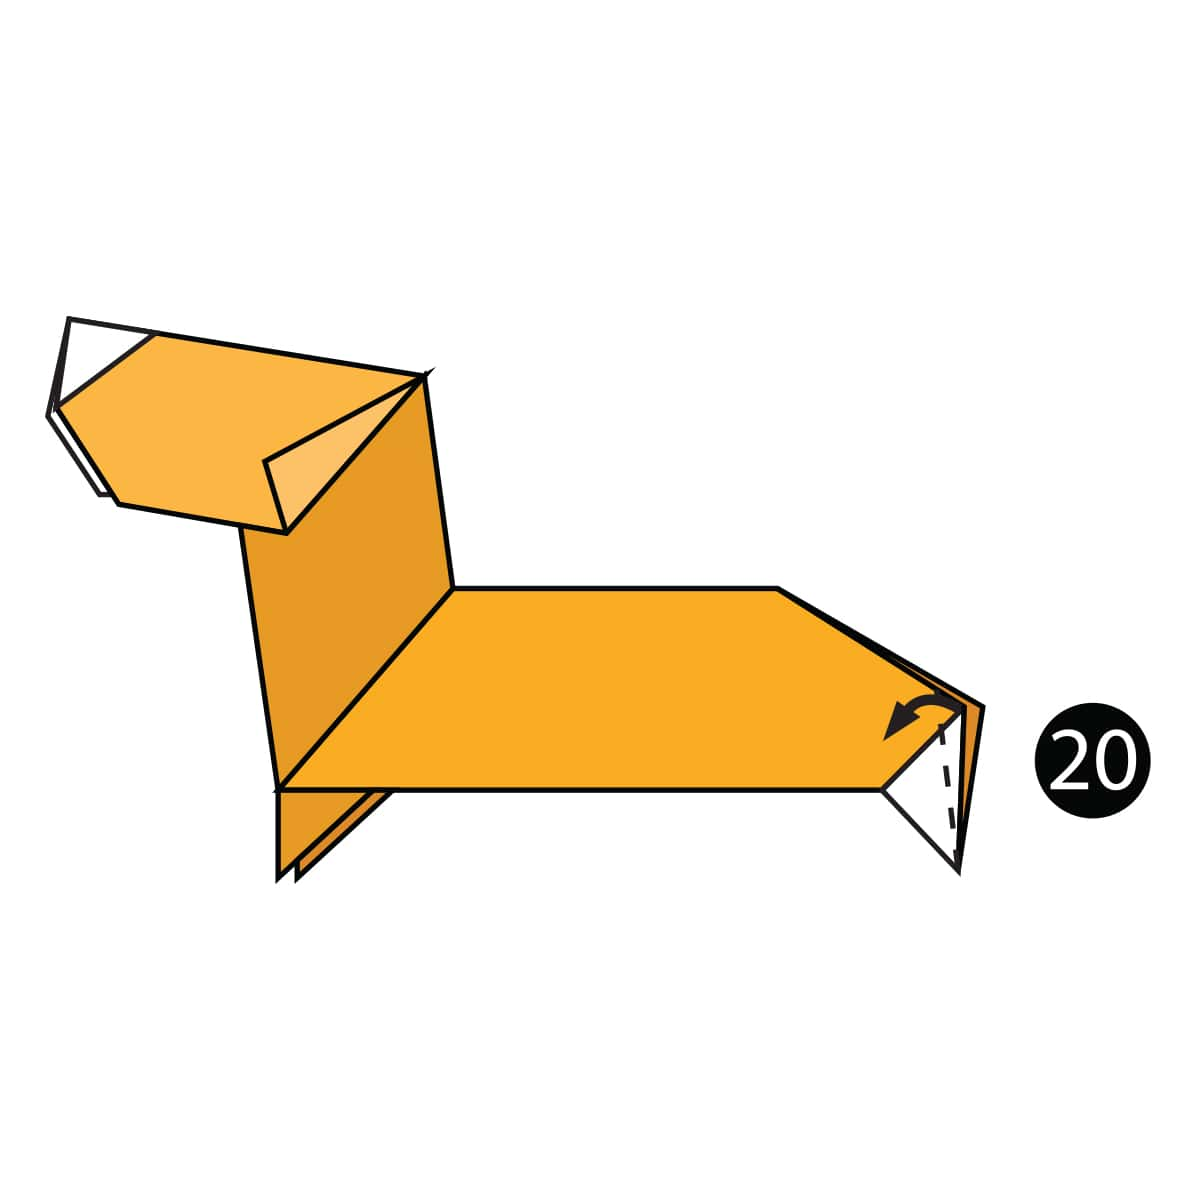 Dachshund Step 20